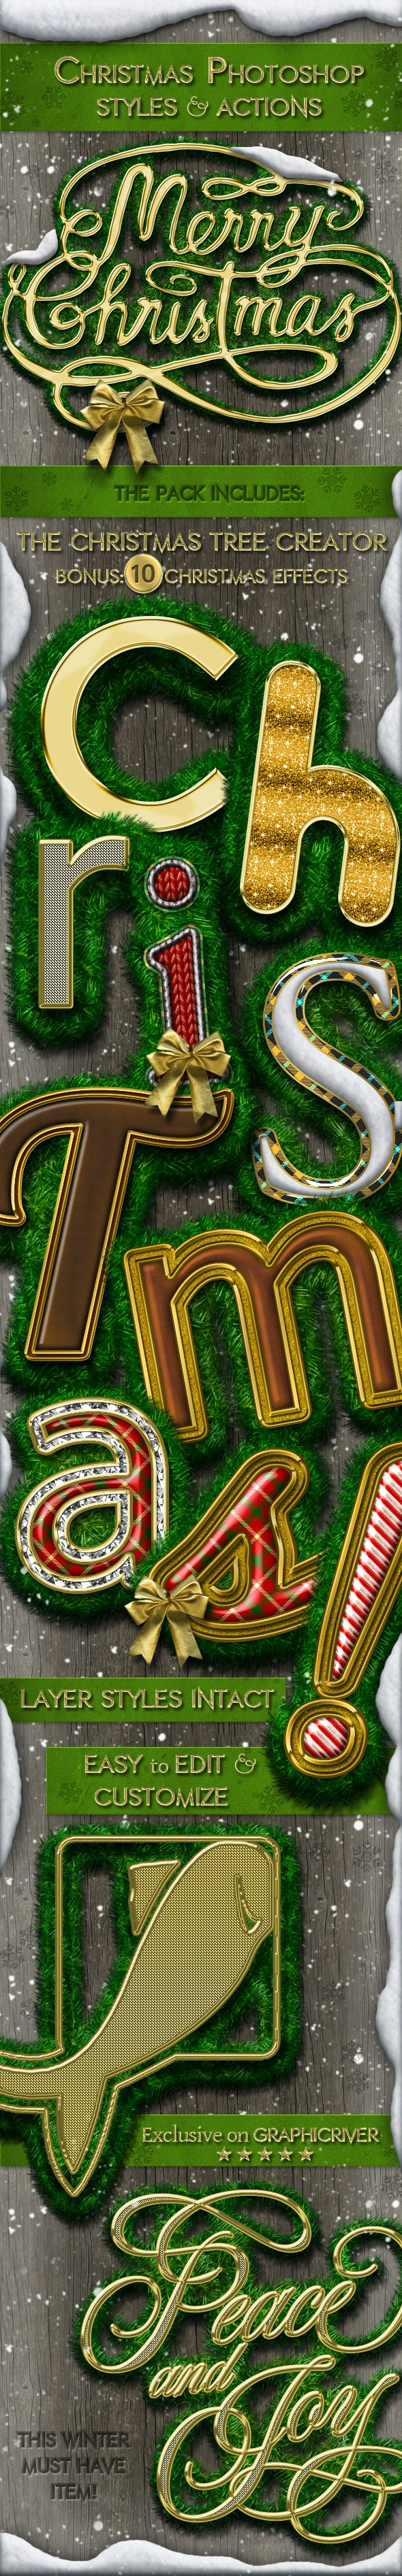 Christmas Styles Photoshop Creation Kit - Text Effects Actions